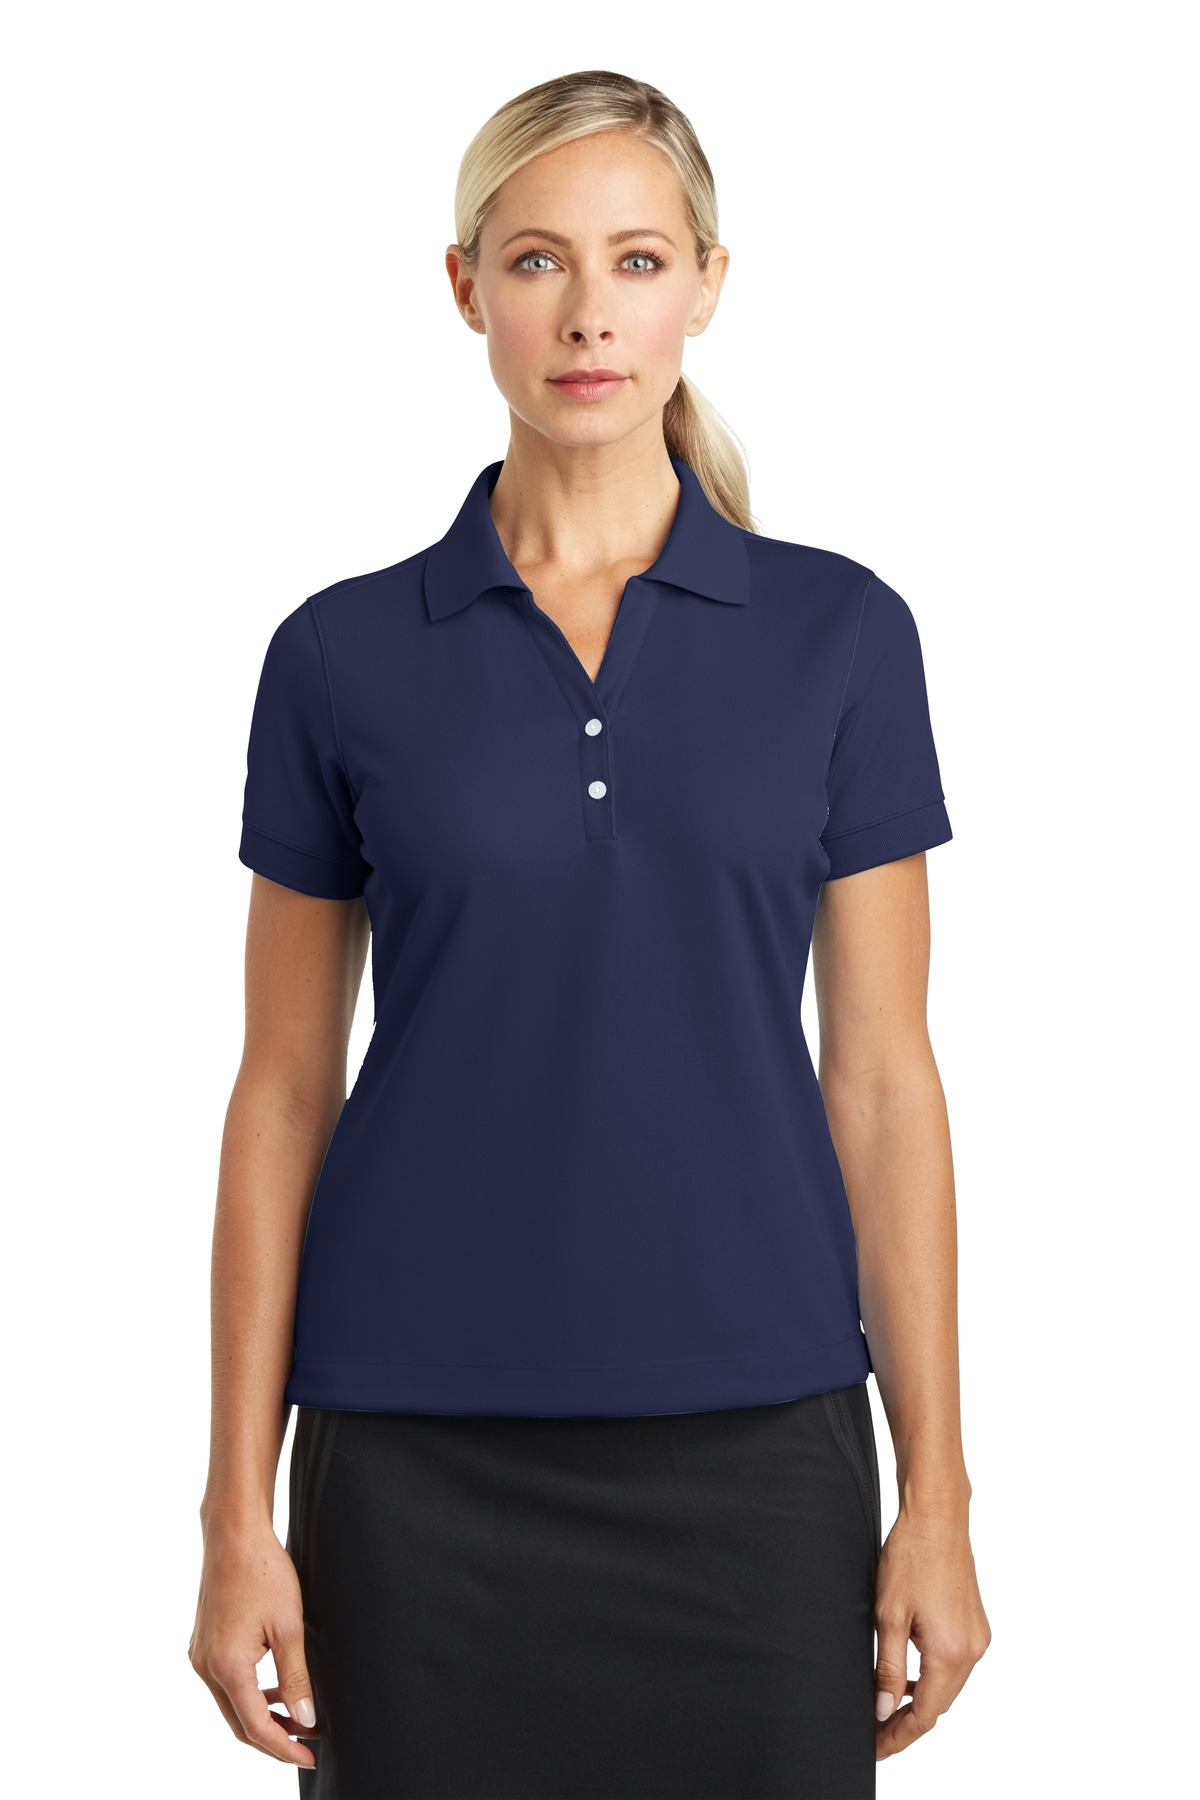 Nike Ladies Dri-FIT Classic Polo.  286772 - Midnight Navy